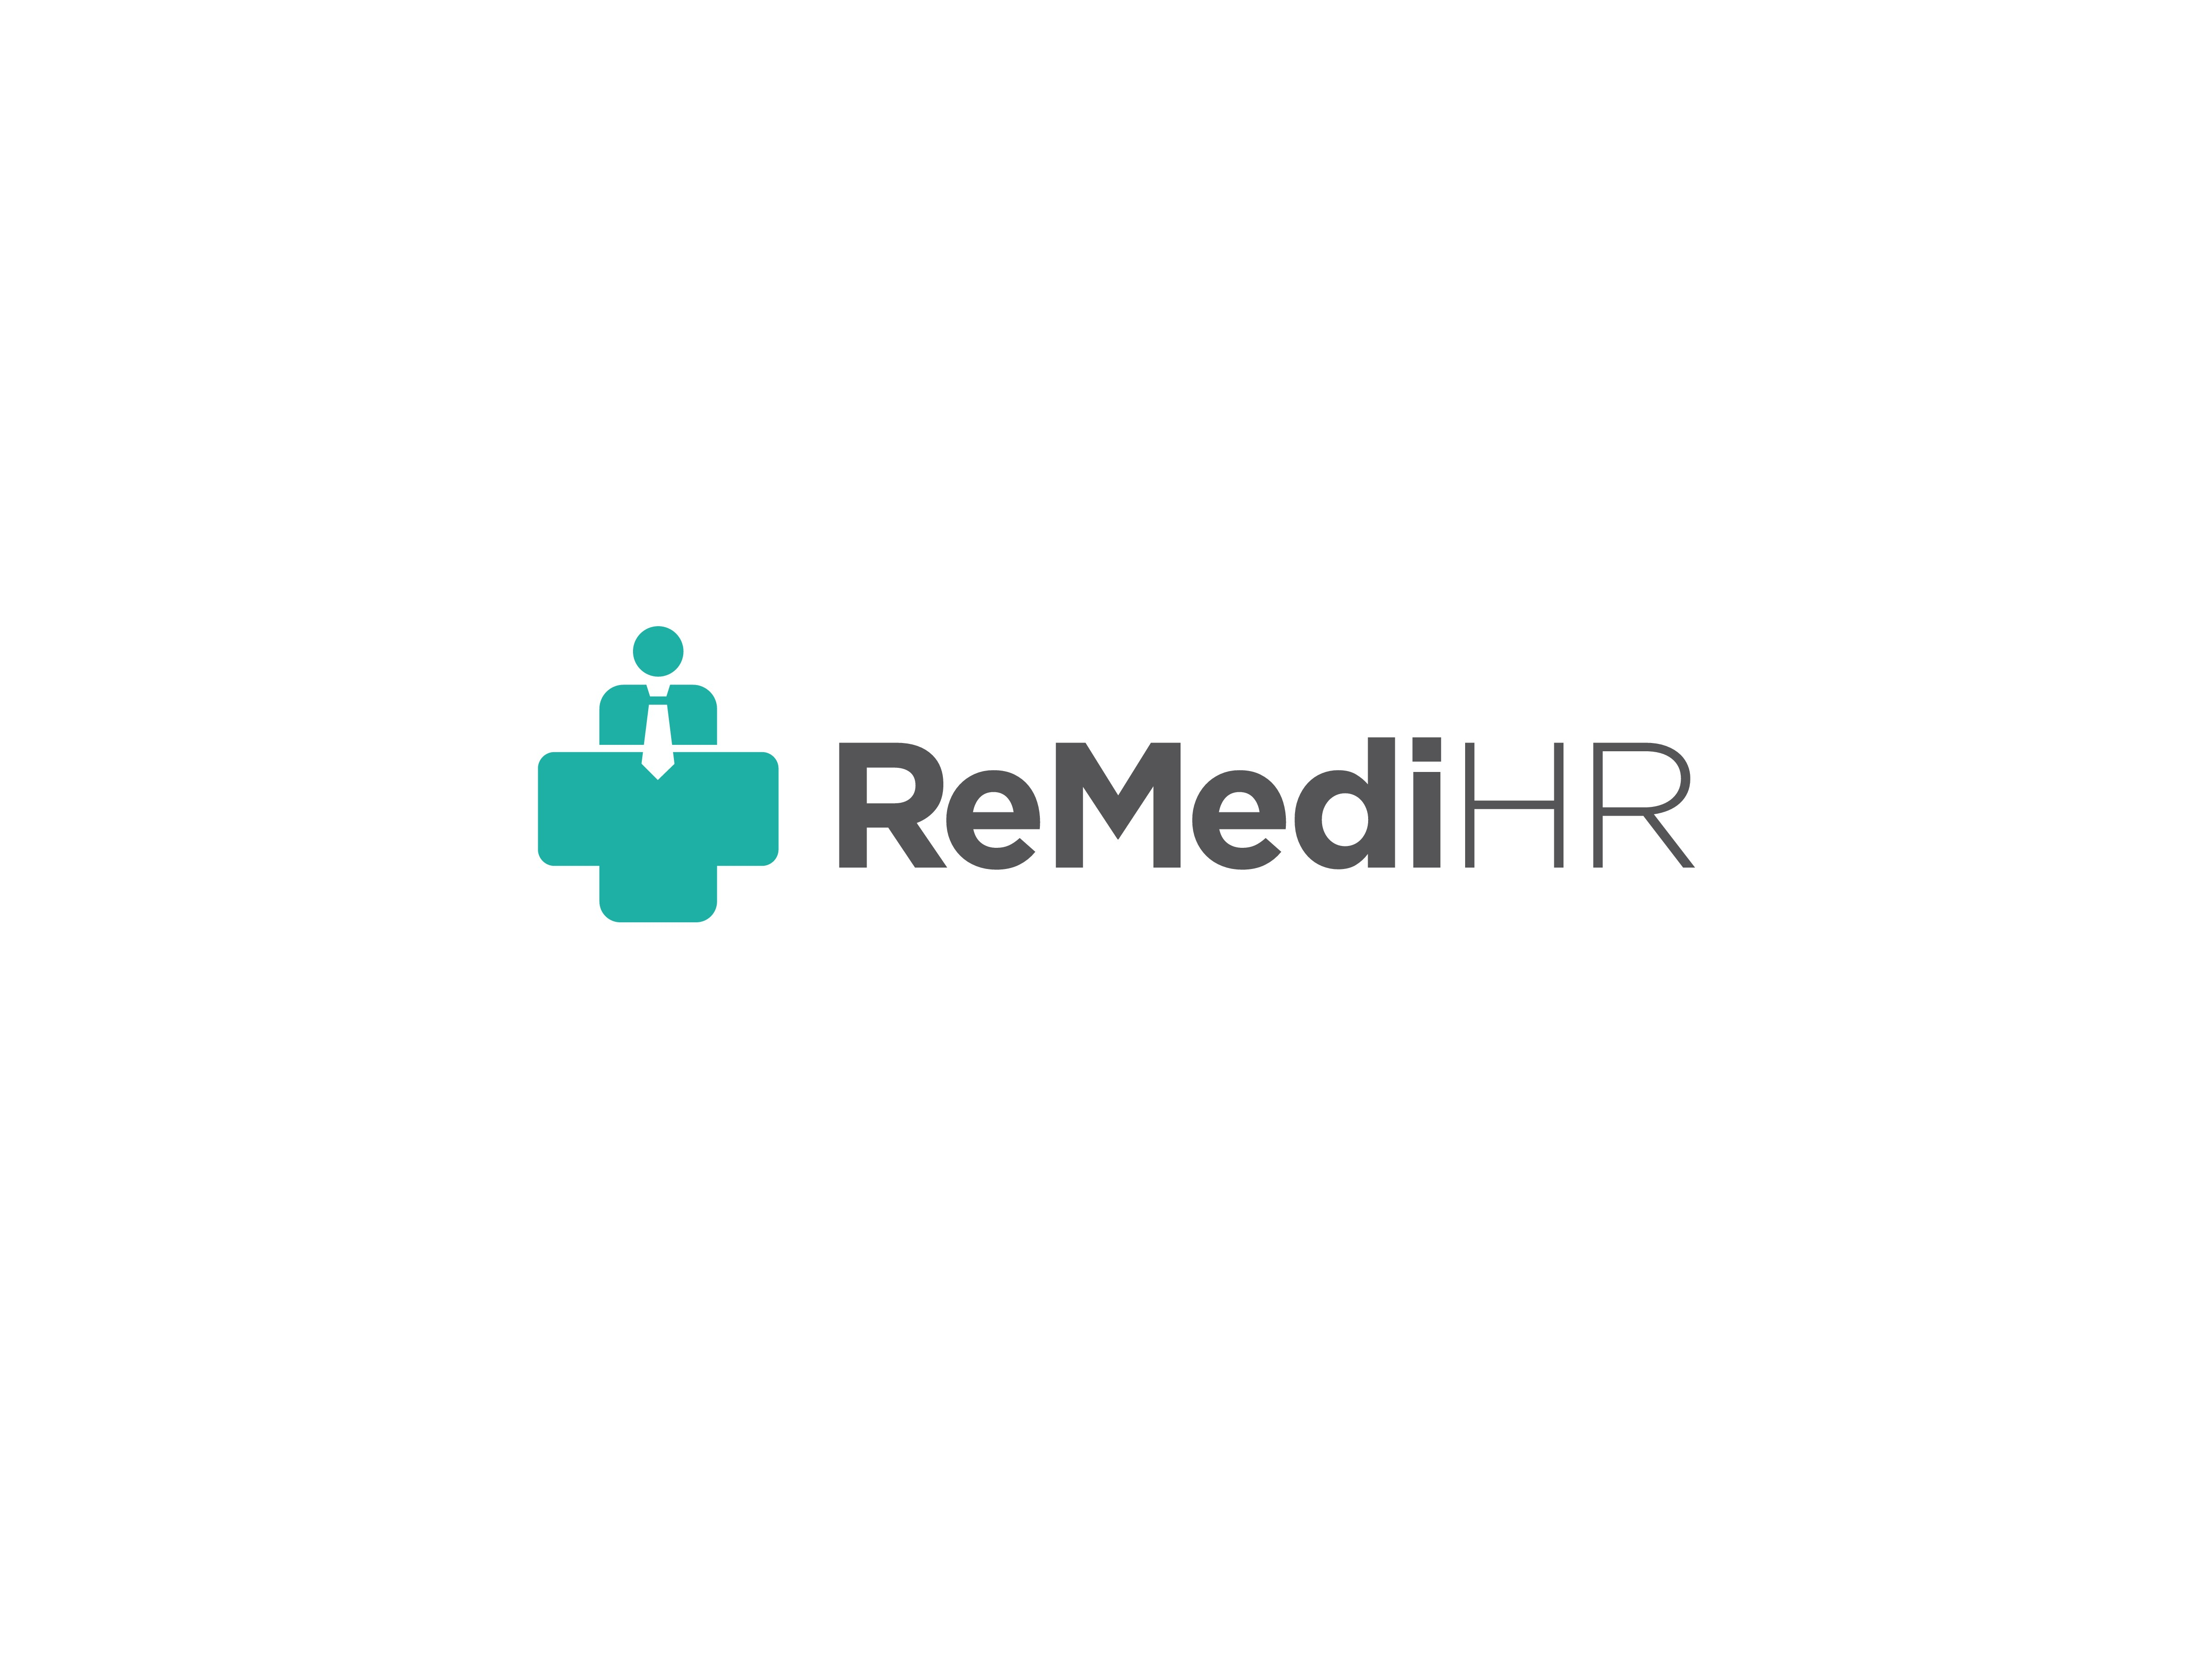 Create a business logo for an upcoming medical HR company!